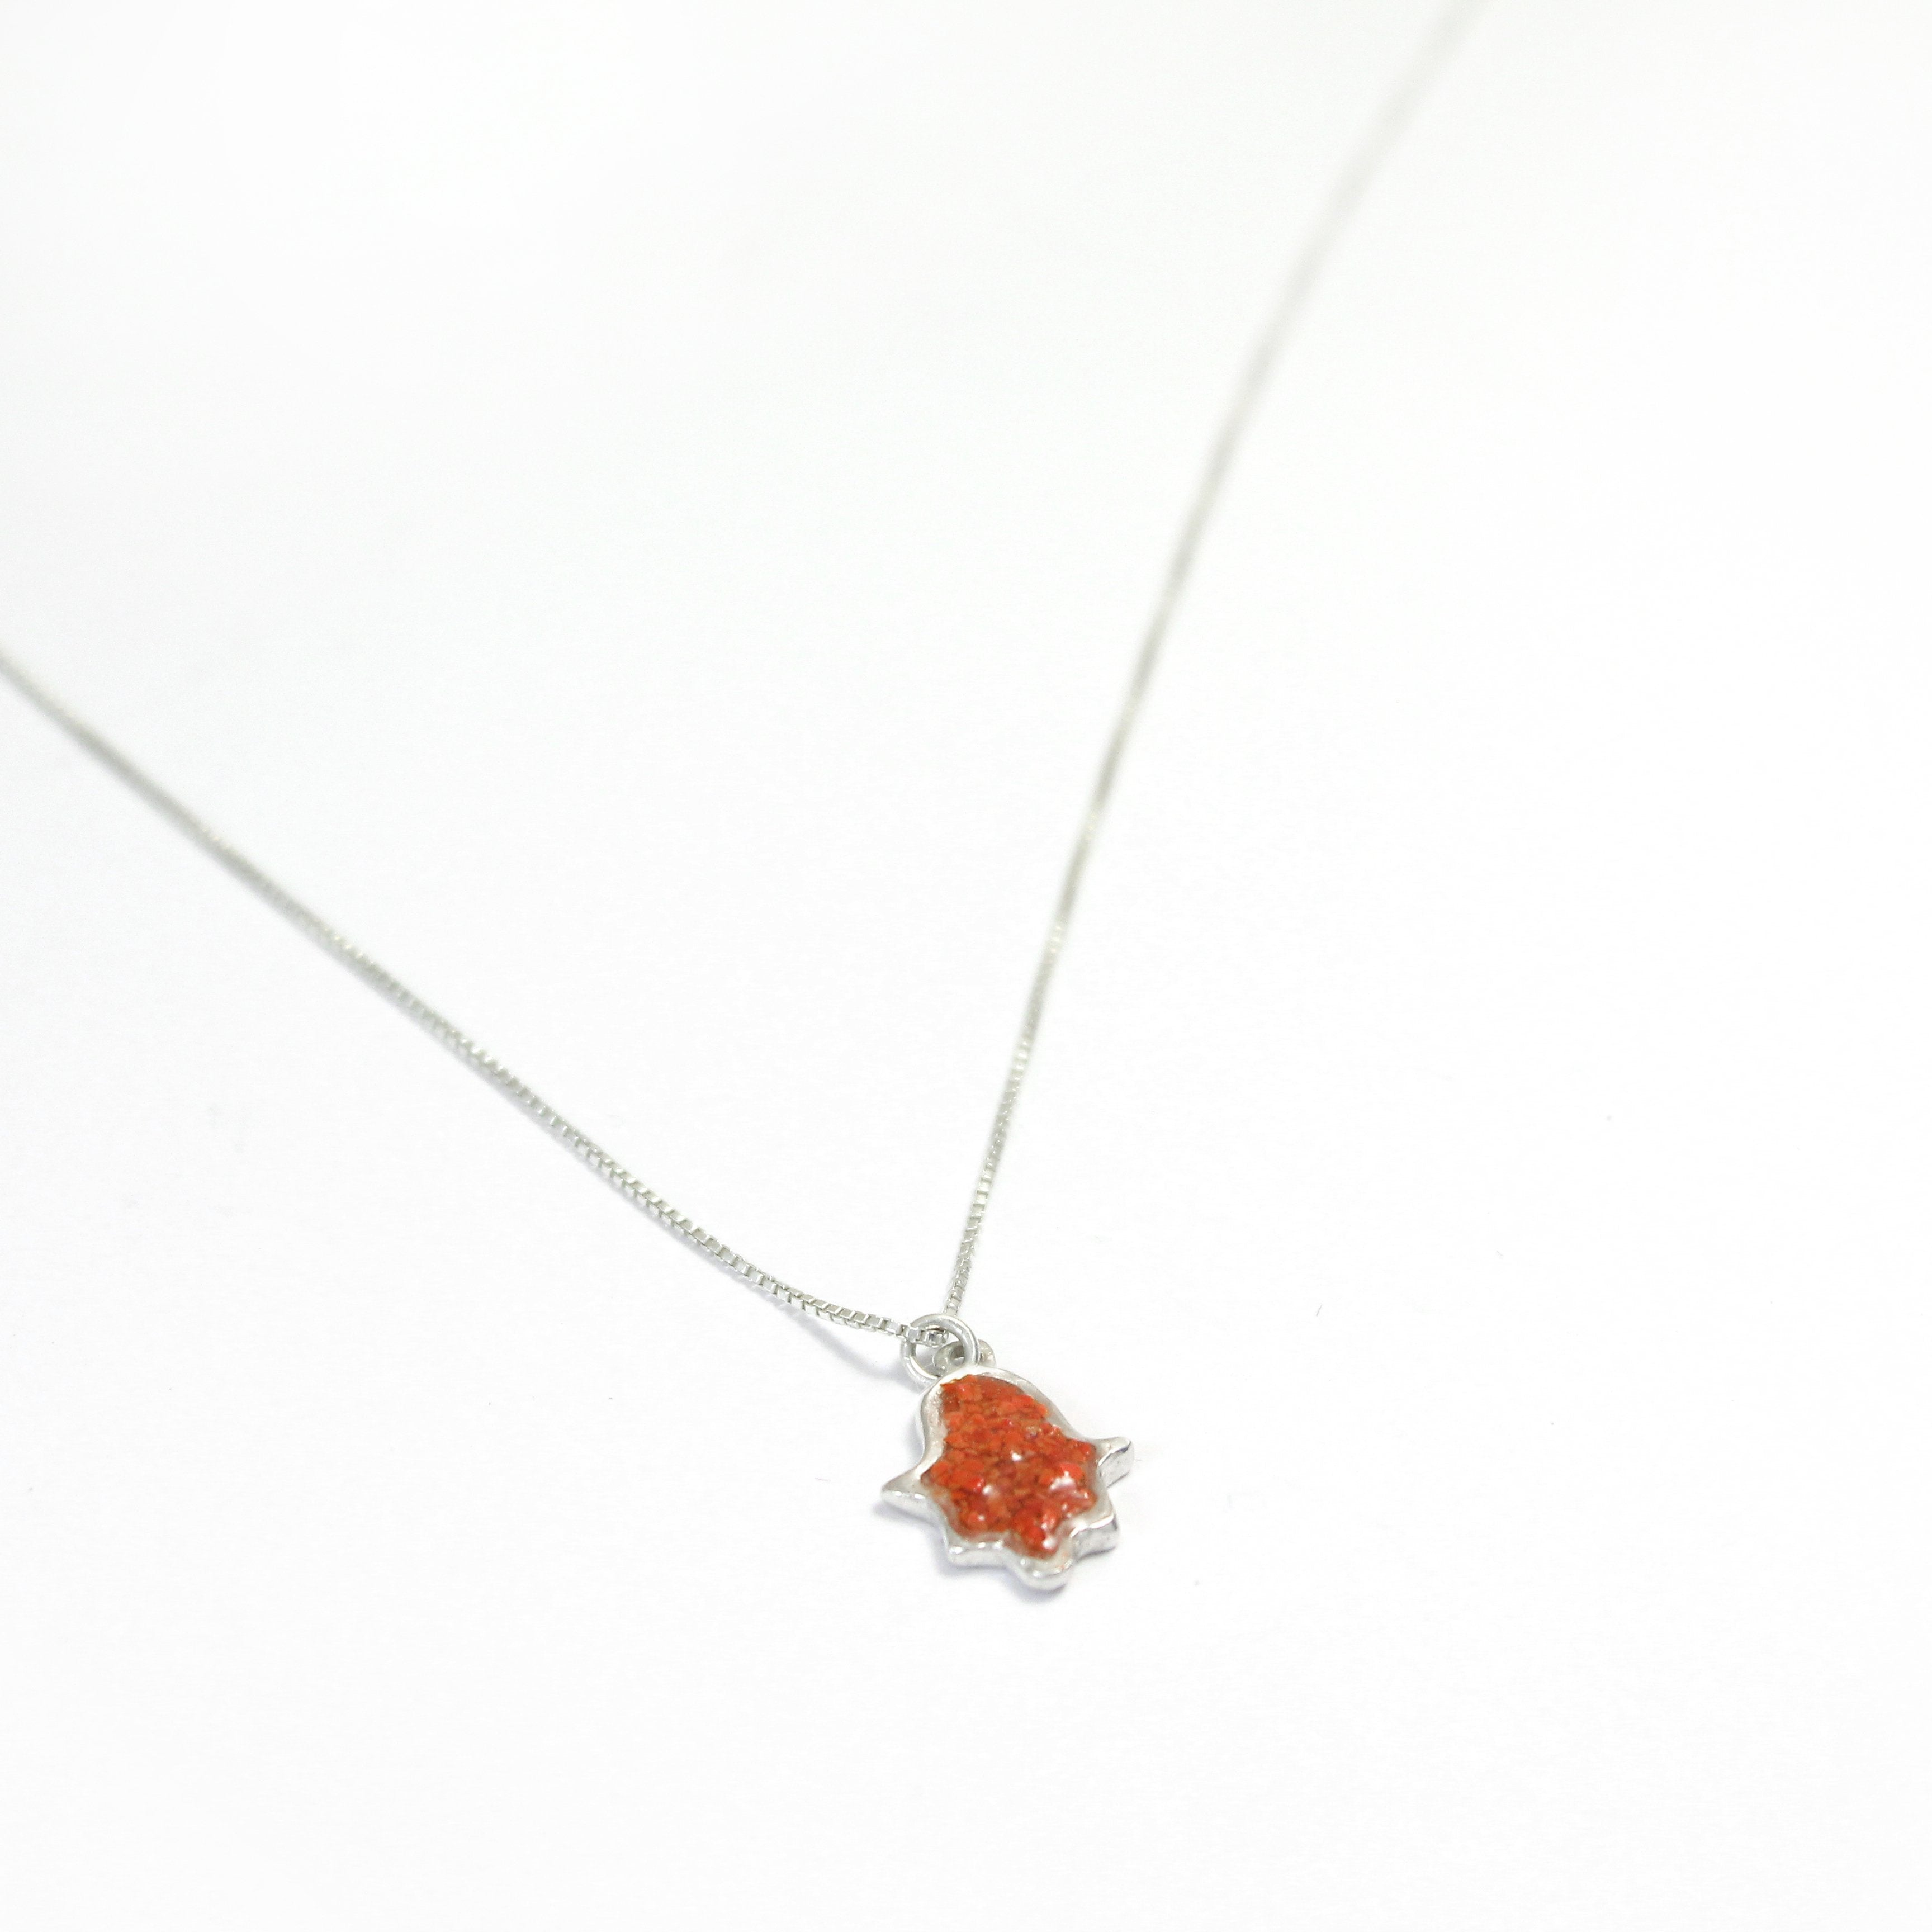 Small Red Hamsa Necklace with stones - Shulamit Kanter